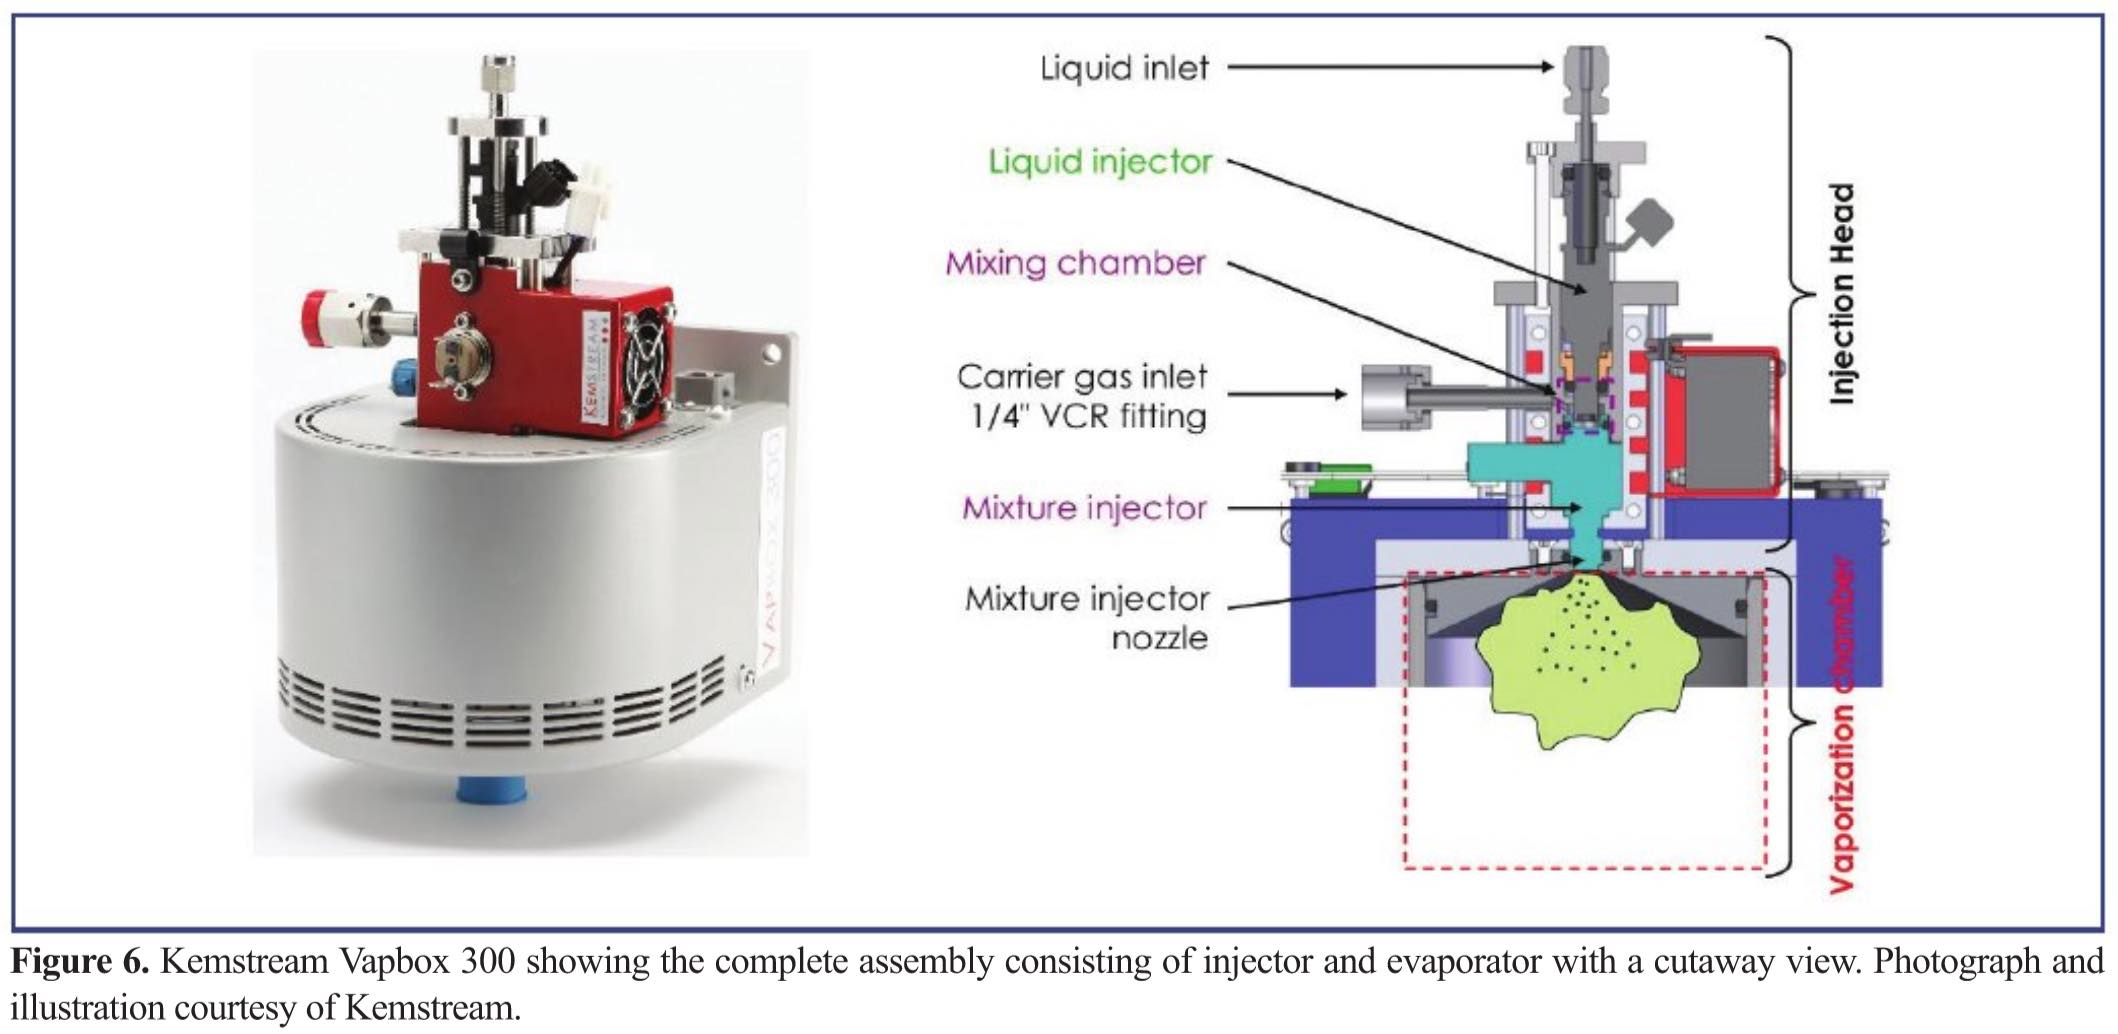 Difficult Deliveries III: Direct Injection of Liquids and Solutions